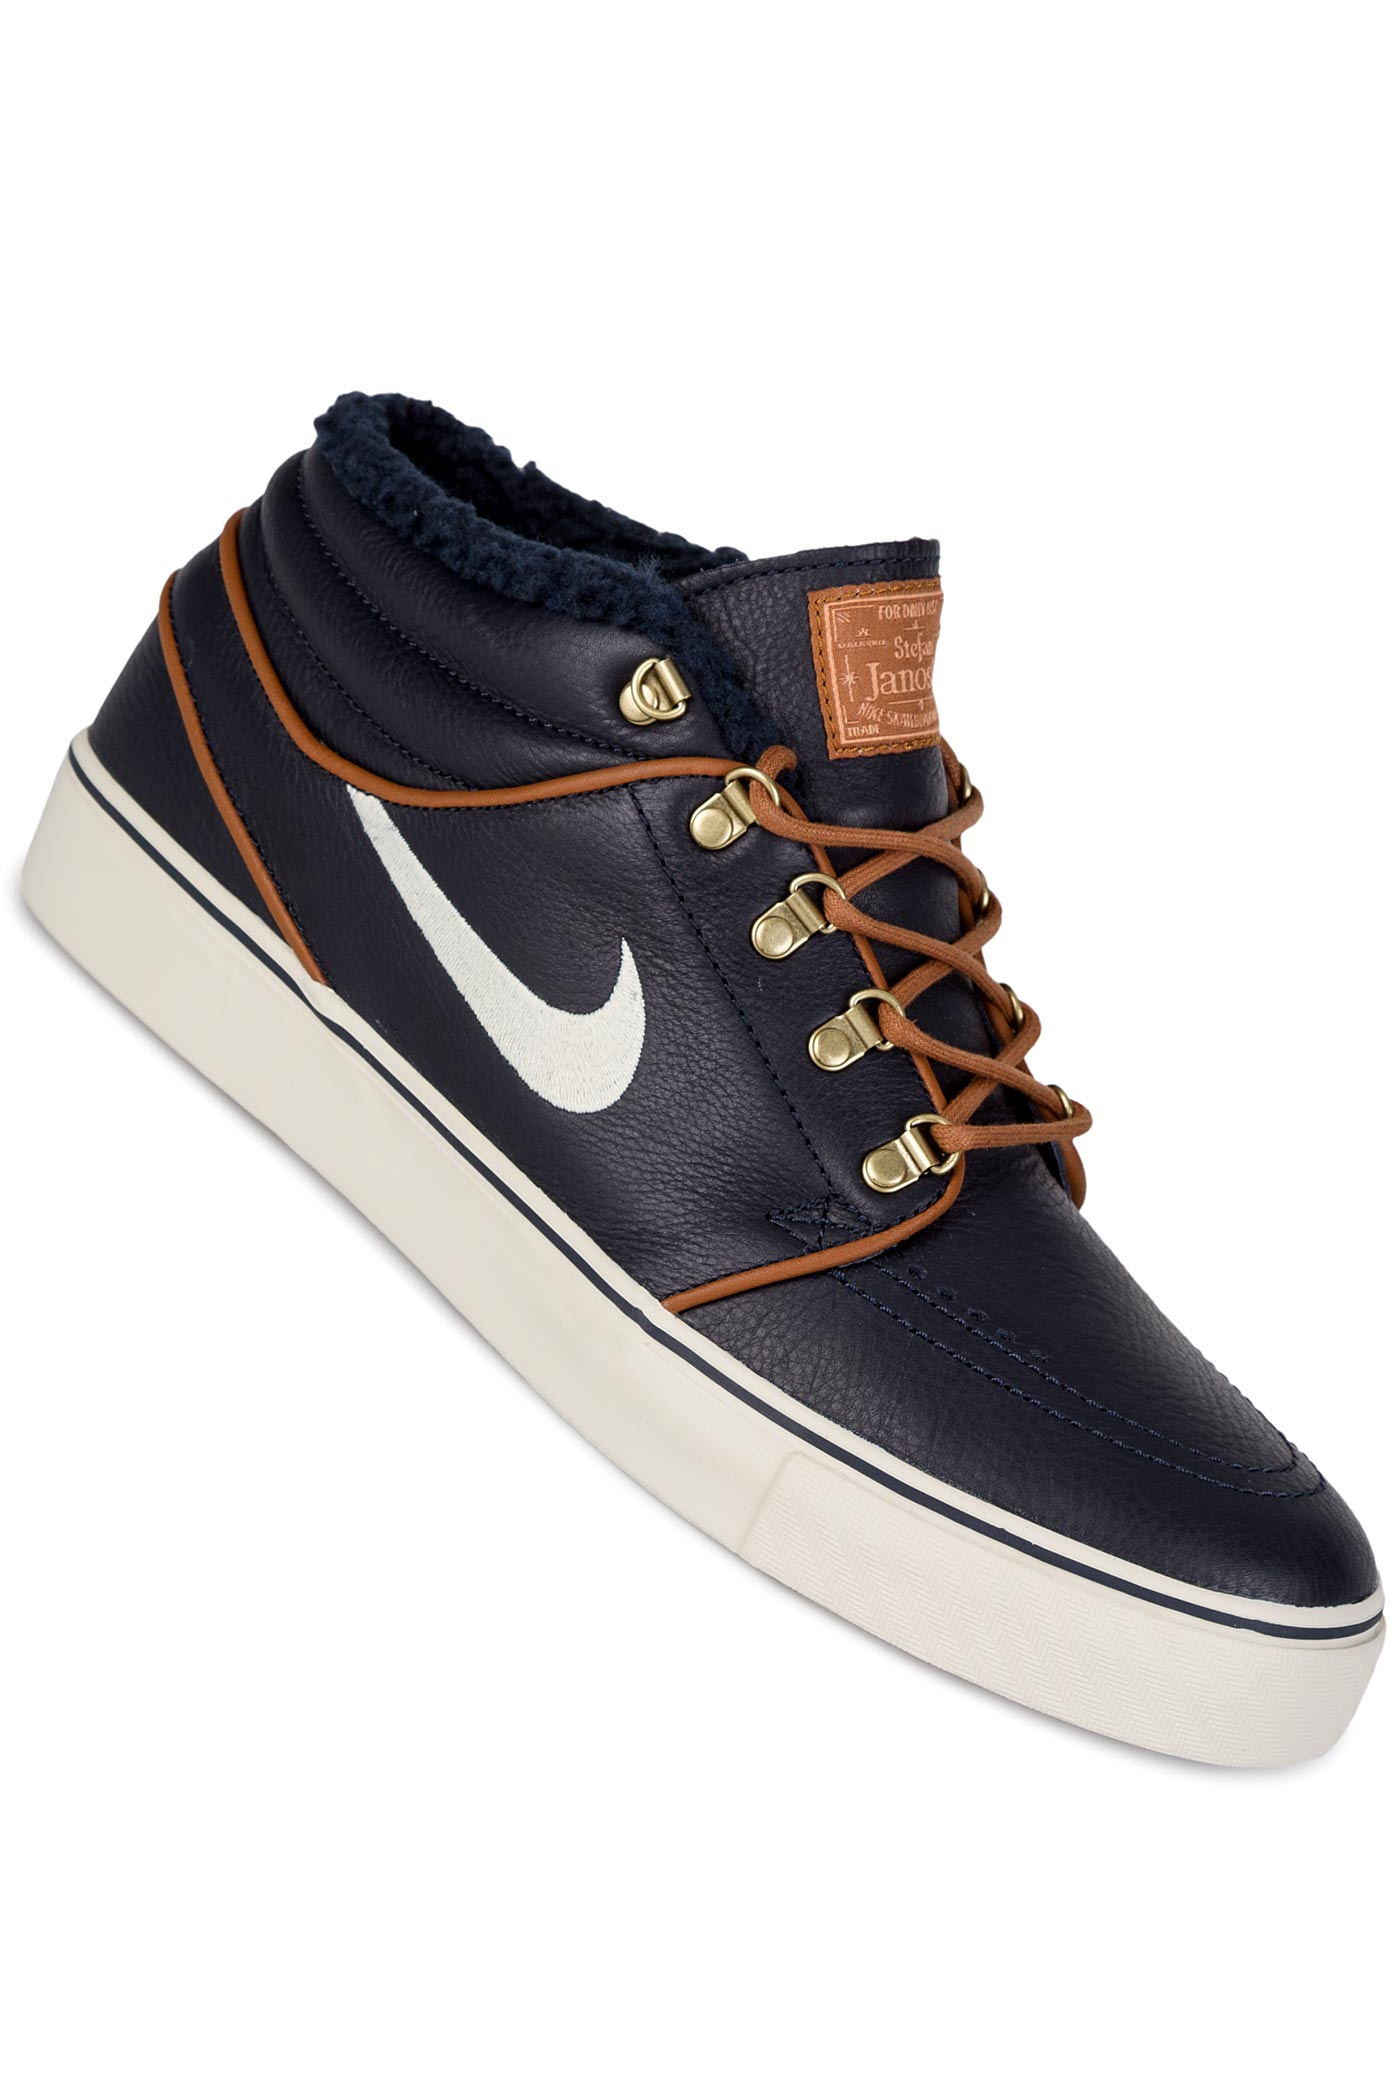 nike sb zoom stefan janoski mid premium shoes dark obsidian birch buy at skatedeluxe. Black Bedroom Furniture Sets. Home Design Ideas